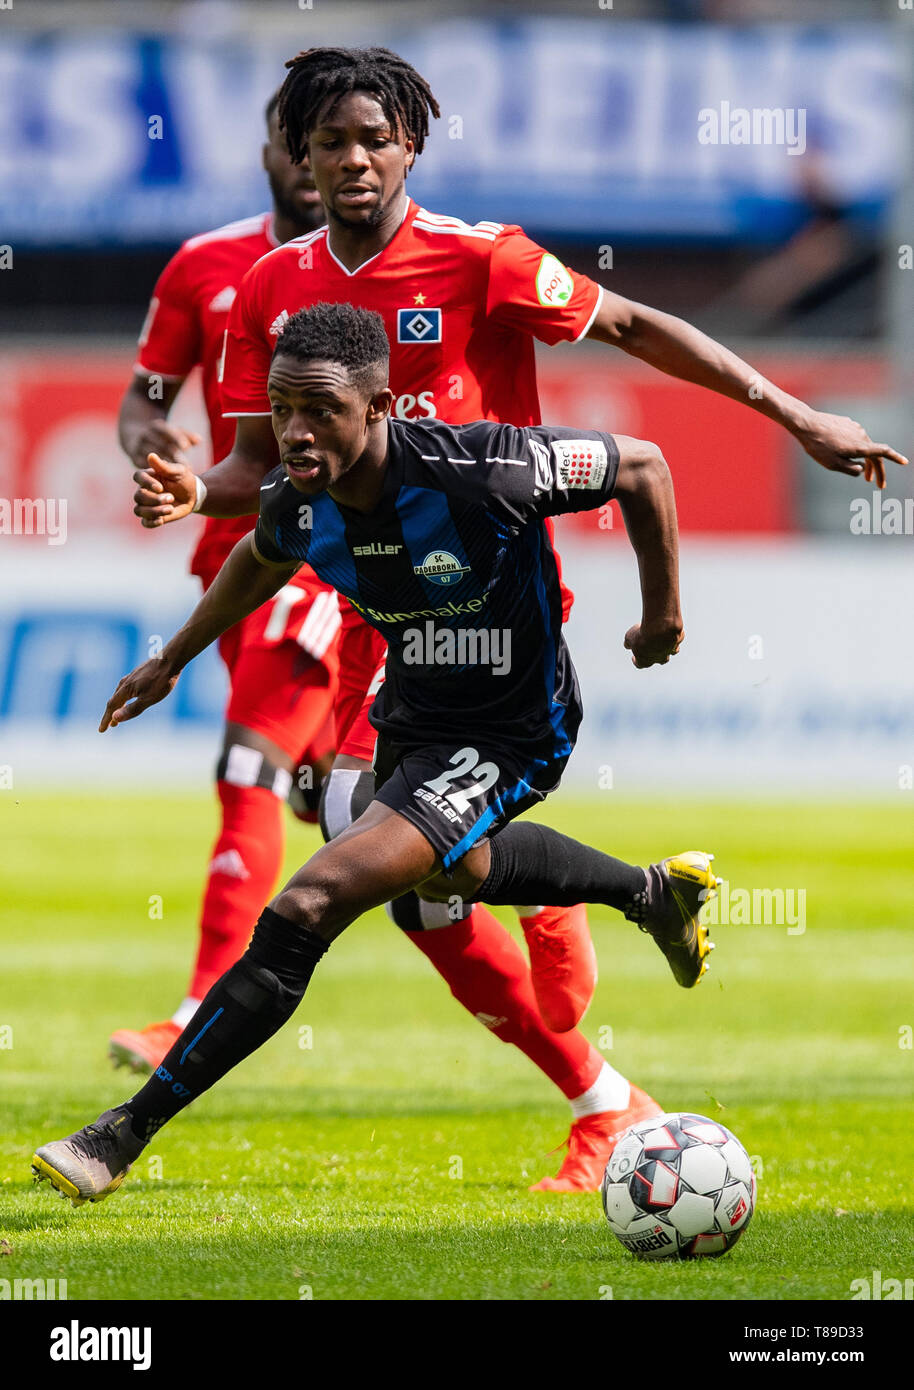 Paderborn, Germany. 12th May, 2019. Soccer: 2nd Bundesliga, SC Paderborn 07 - Hamburger SV, 33rd matchday in the Benteler Arena. Paderborn's Christopher Antwi-Adjej (front) and Hamburg's Gideon Jung fight for the ball. Credit: Guido Kirchner/dpa - IMPORTANT NOTE: In accordance with the requirements of the DFL Deutsche Fußball Liga or the DFB Deutscher Fußball-Bund, it is prohibited to use or have used photographs taken in the stadium and/or the match in the form of sequence images and/or video-like photo sequences./dpa/Alamy Live News - Stock Image